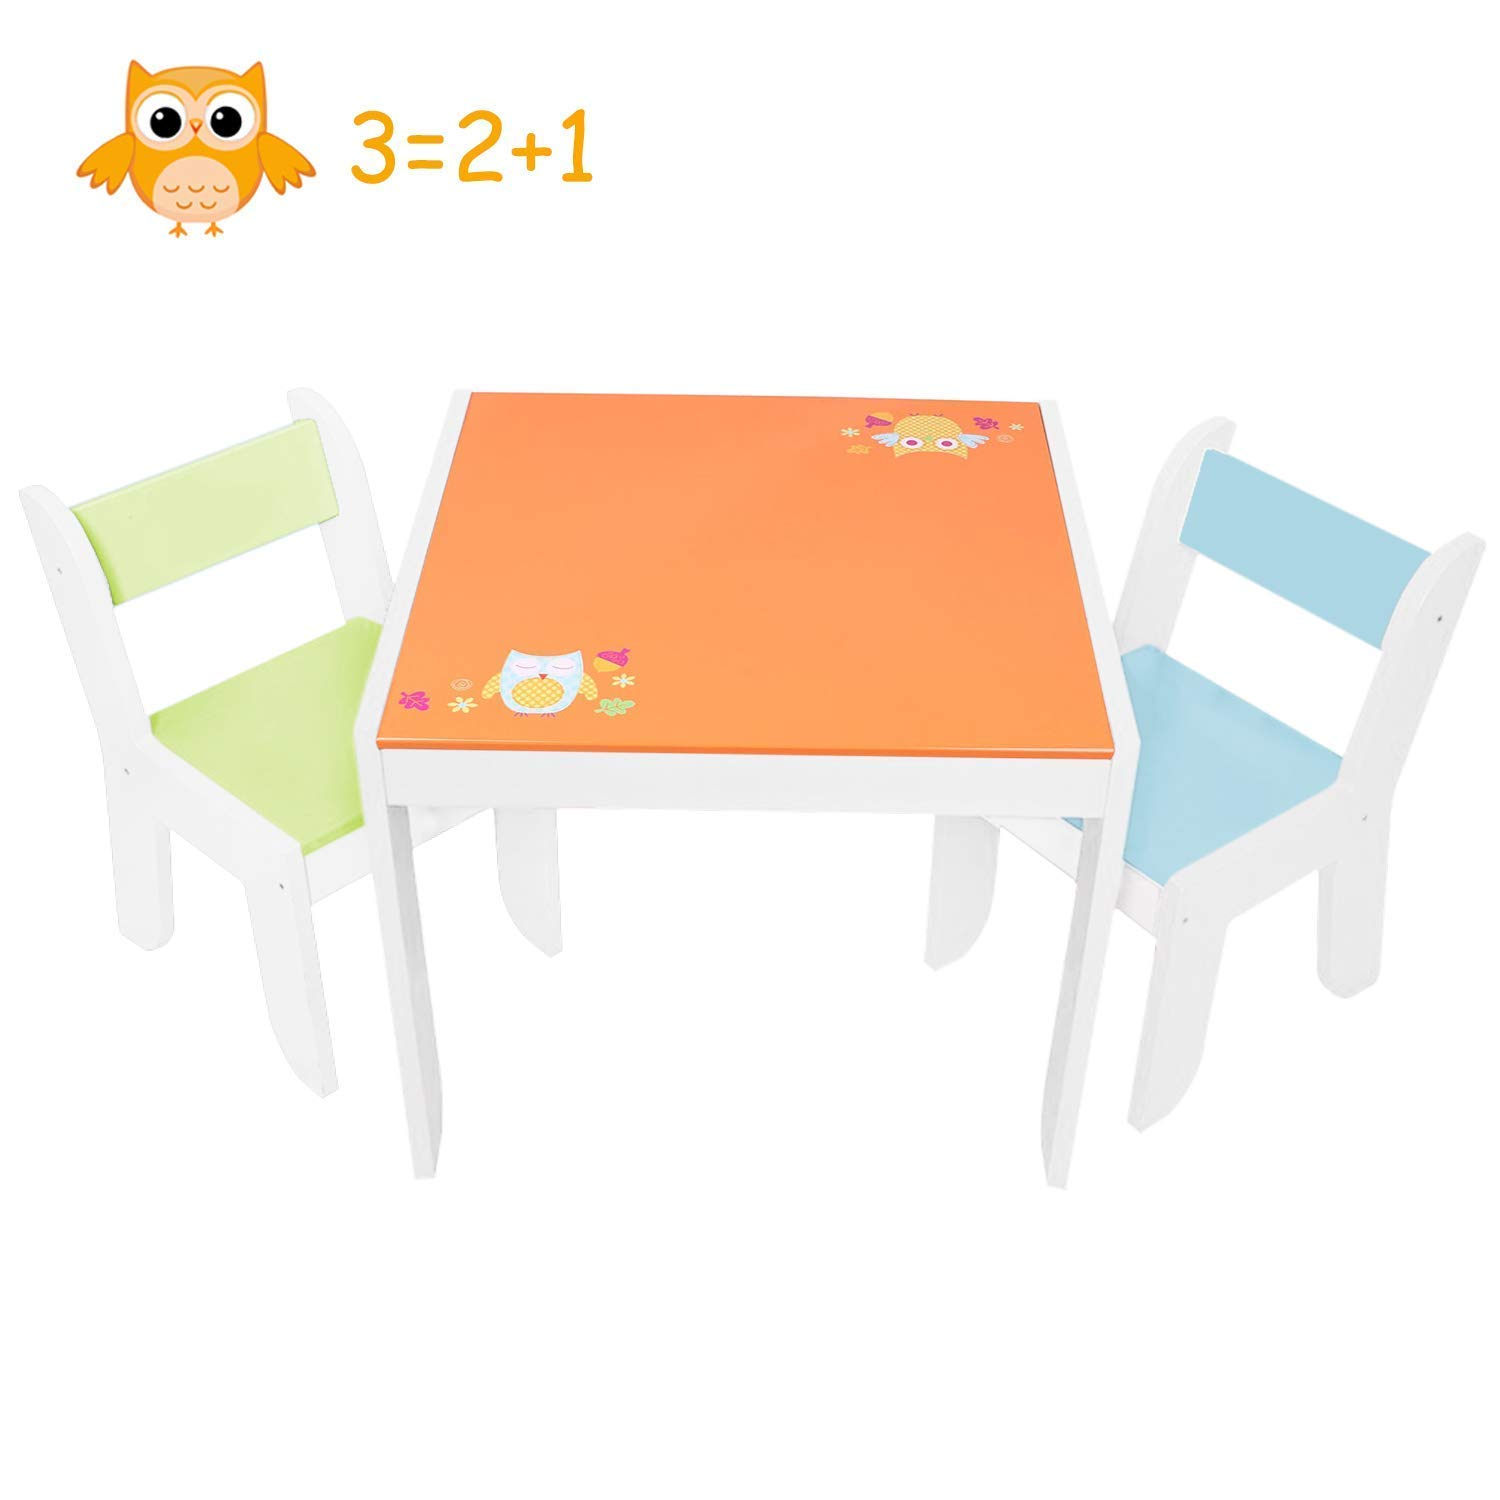 Prime Labebe Wooden Activity Table Chair Set Orange Owl Toddler Table For 1 5 Years Baby Table Set Toddler Play Table Baby Activity Table Kid Table Download Free Architecture Designs Crovemadebymaigaardcom